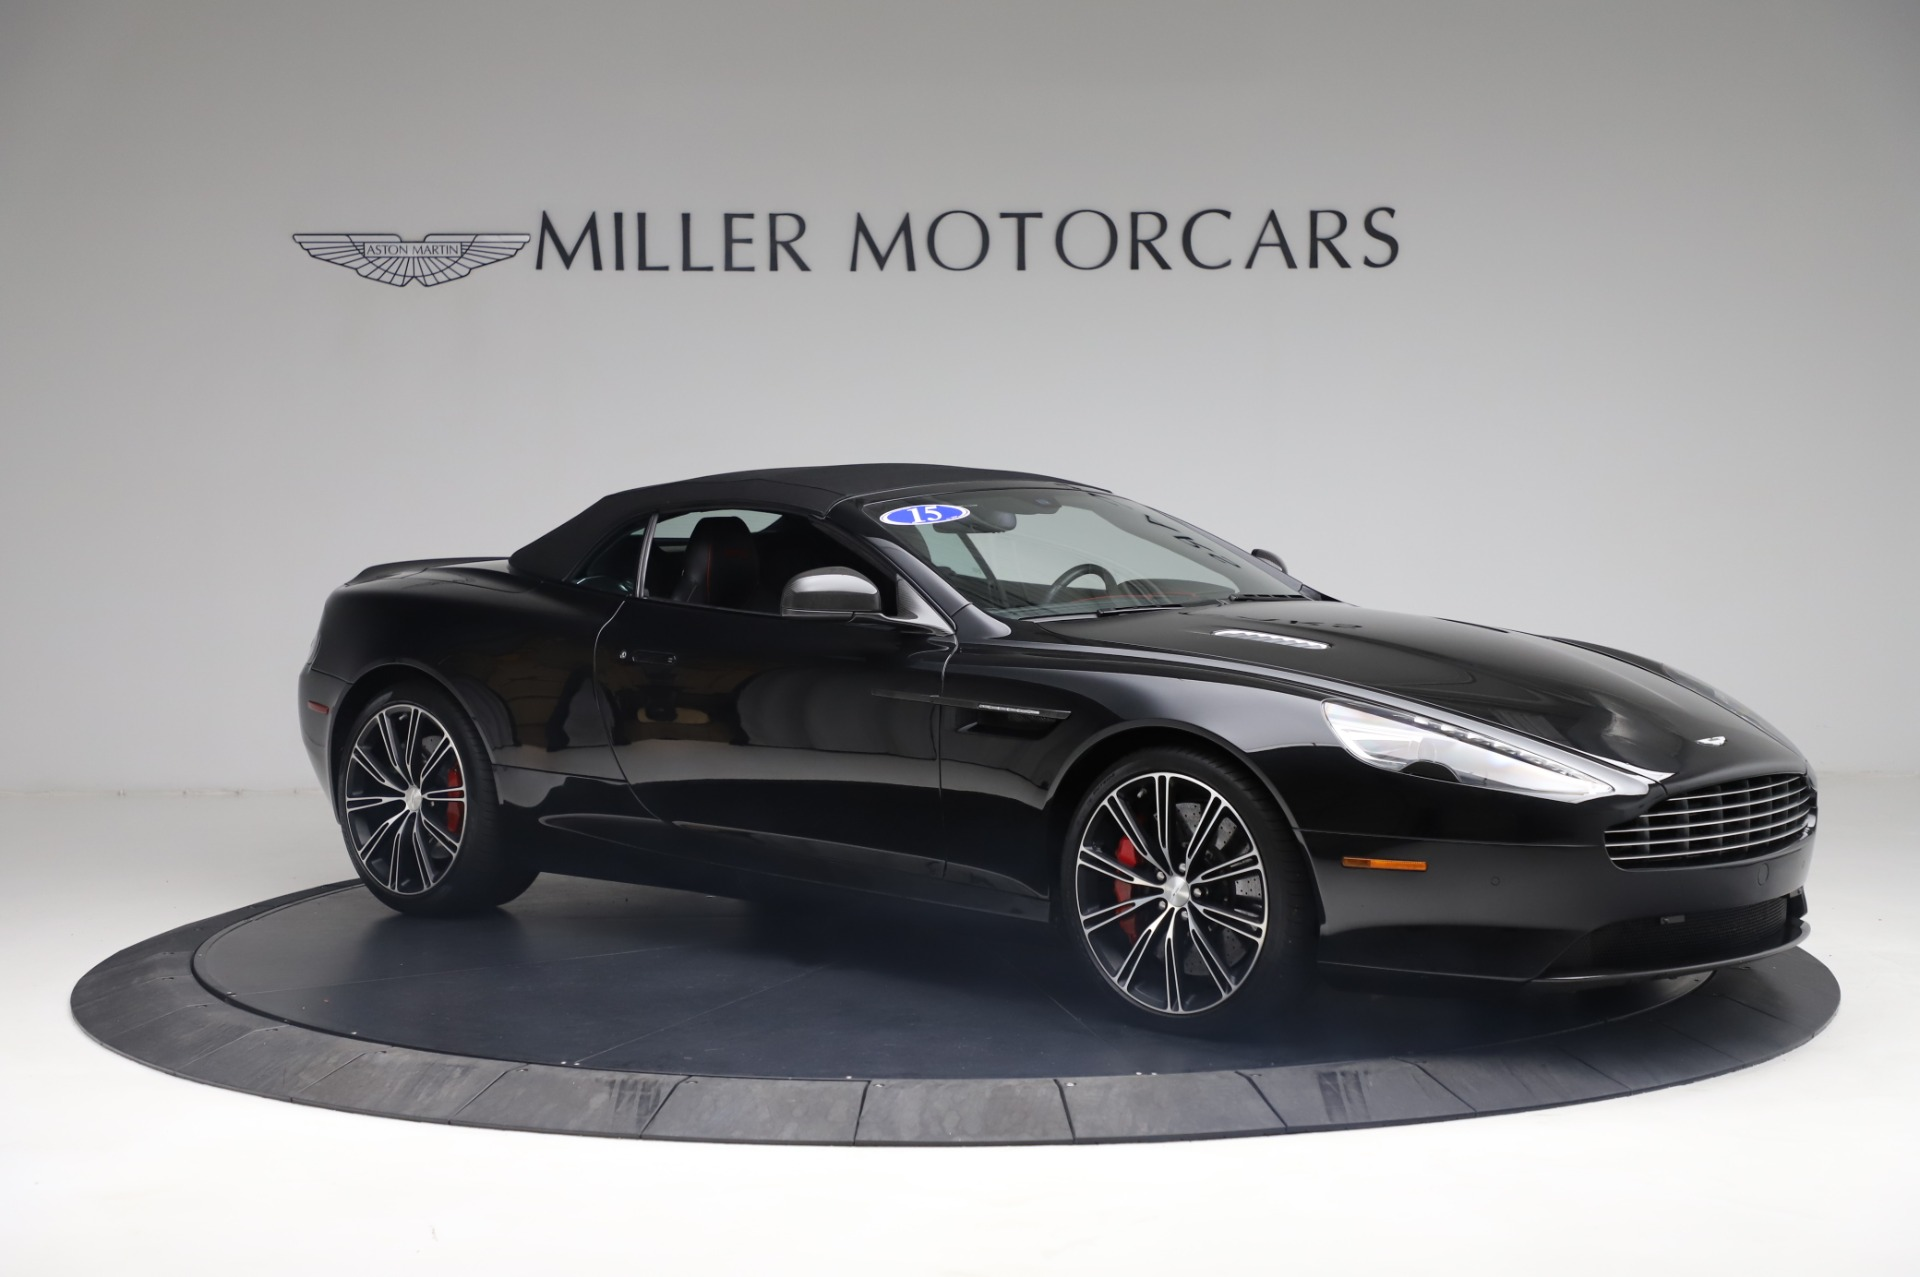 Used 2015 Aston Martin DB9 Convertible For Sale In Westport, CT 1919_p17